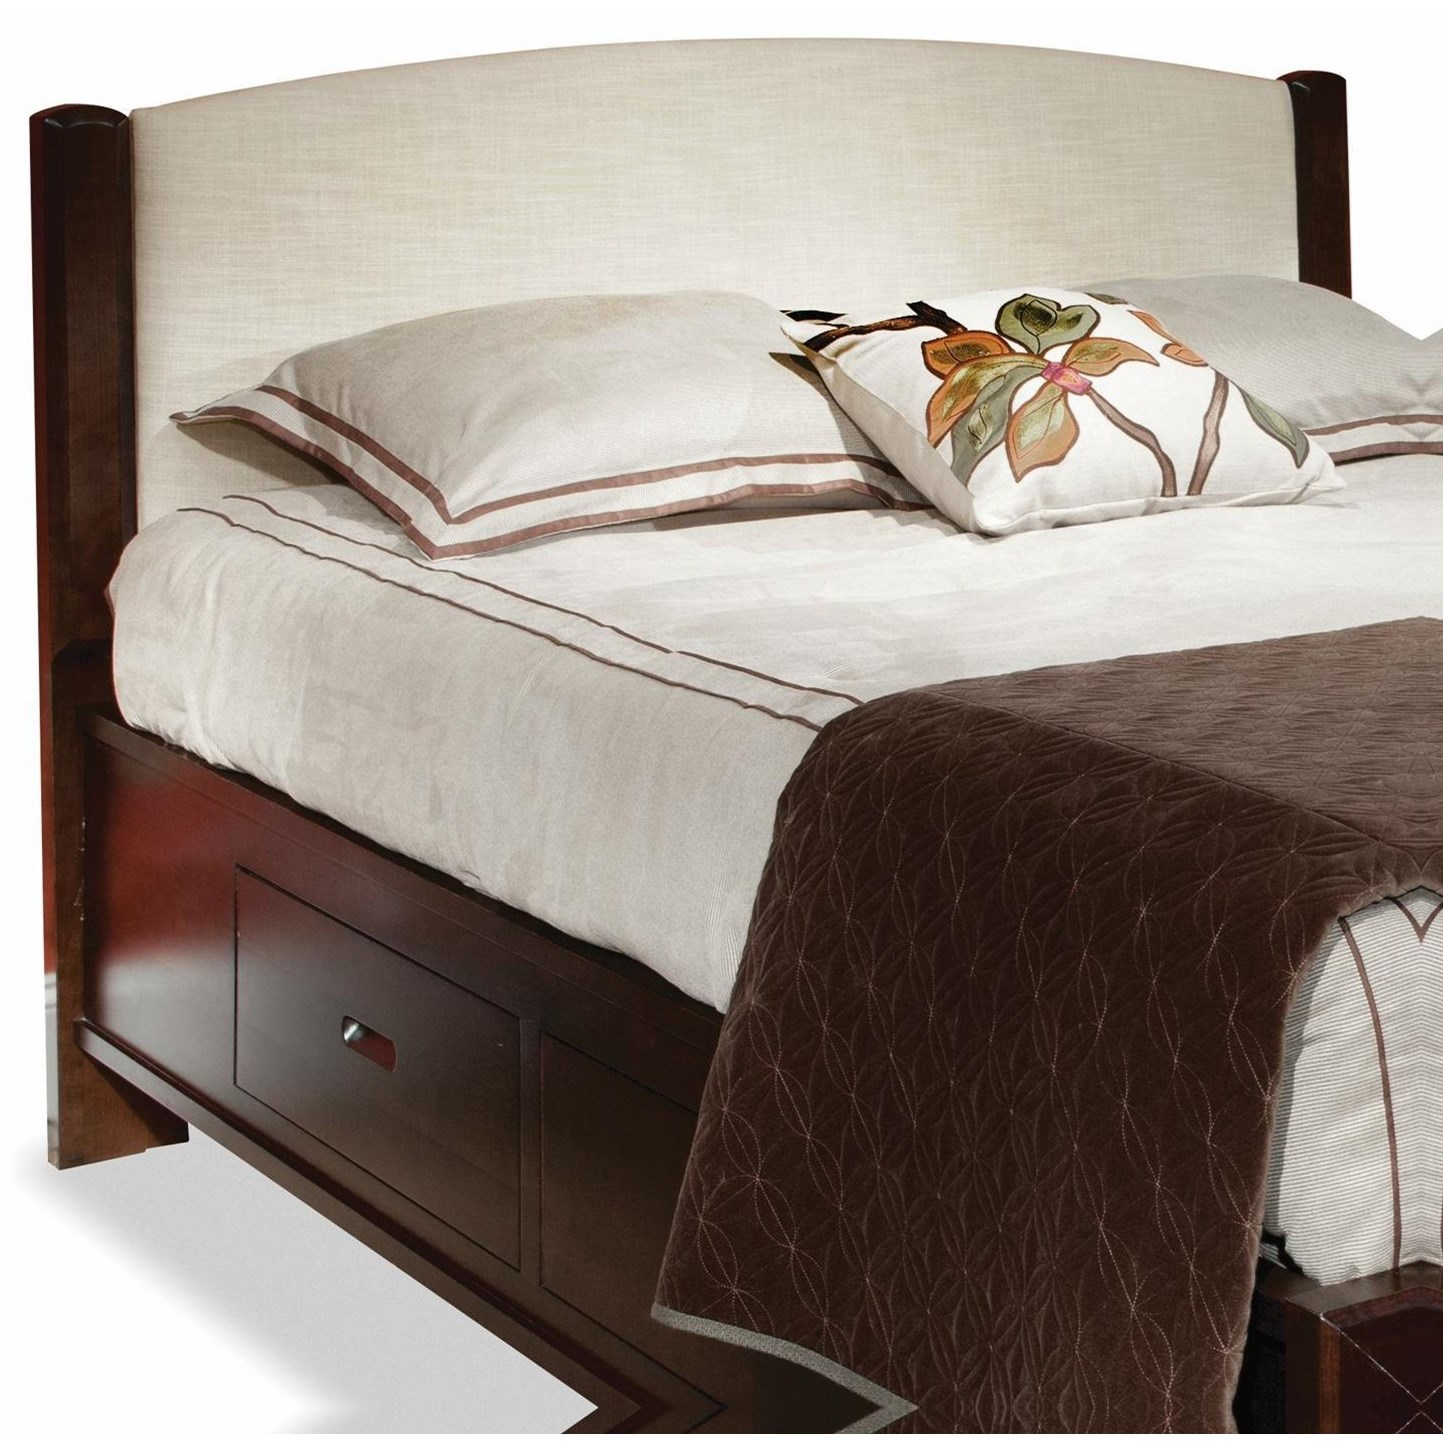 Beds Double Fabric Panel Headboard by perfectbalance by Durham Furniture at Stoney Creek Furniture